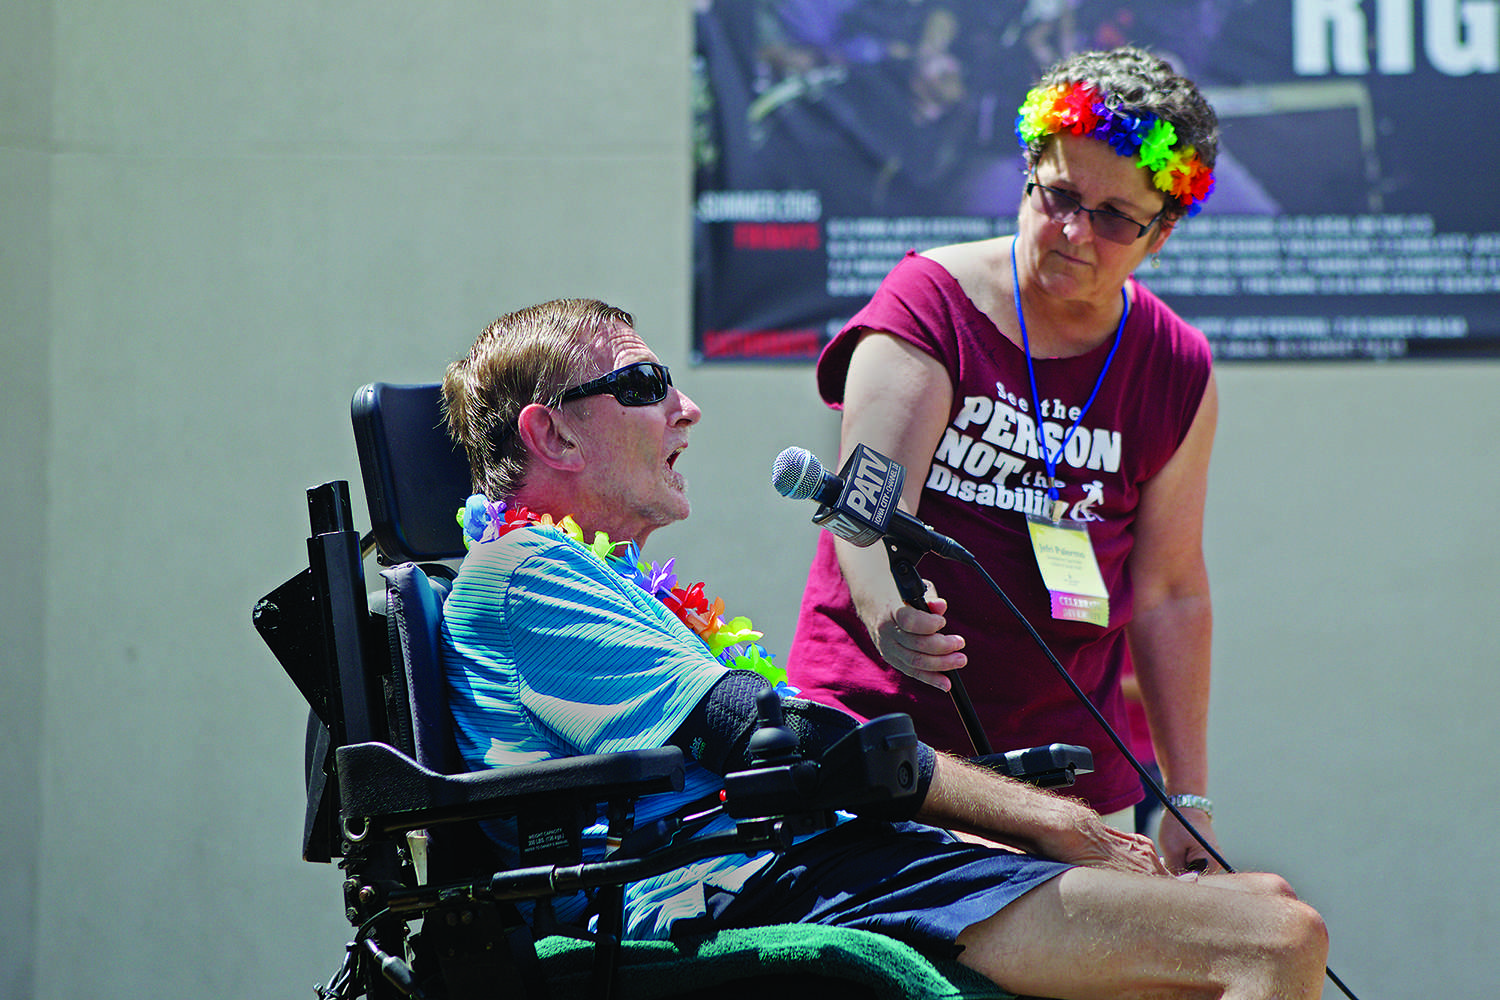 FILE - In this file photo, Keith Ruff talks at the Americans with Disability Act 25th Anniversary Celebration at the Ped Mall in Iowa City on Saturday July 25, 2015. The ADA is a civil rights law that bans discrimination against individuals with disabilities. (The Daily Iowan/Jai Yeon Lee, file)